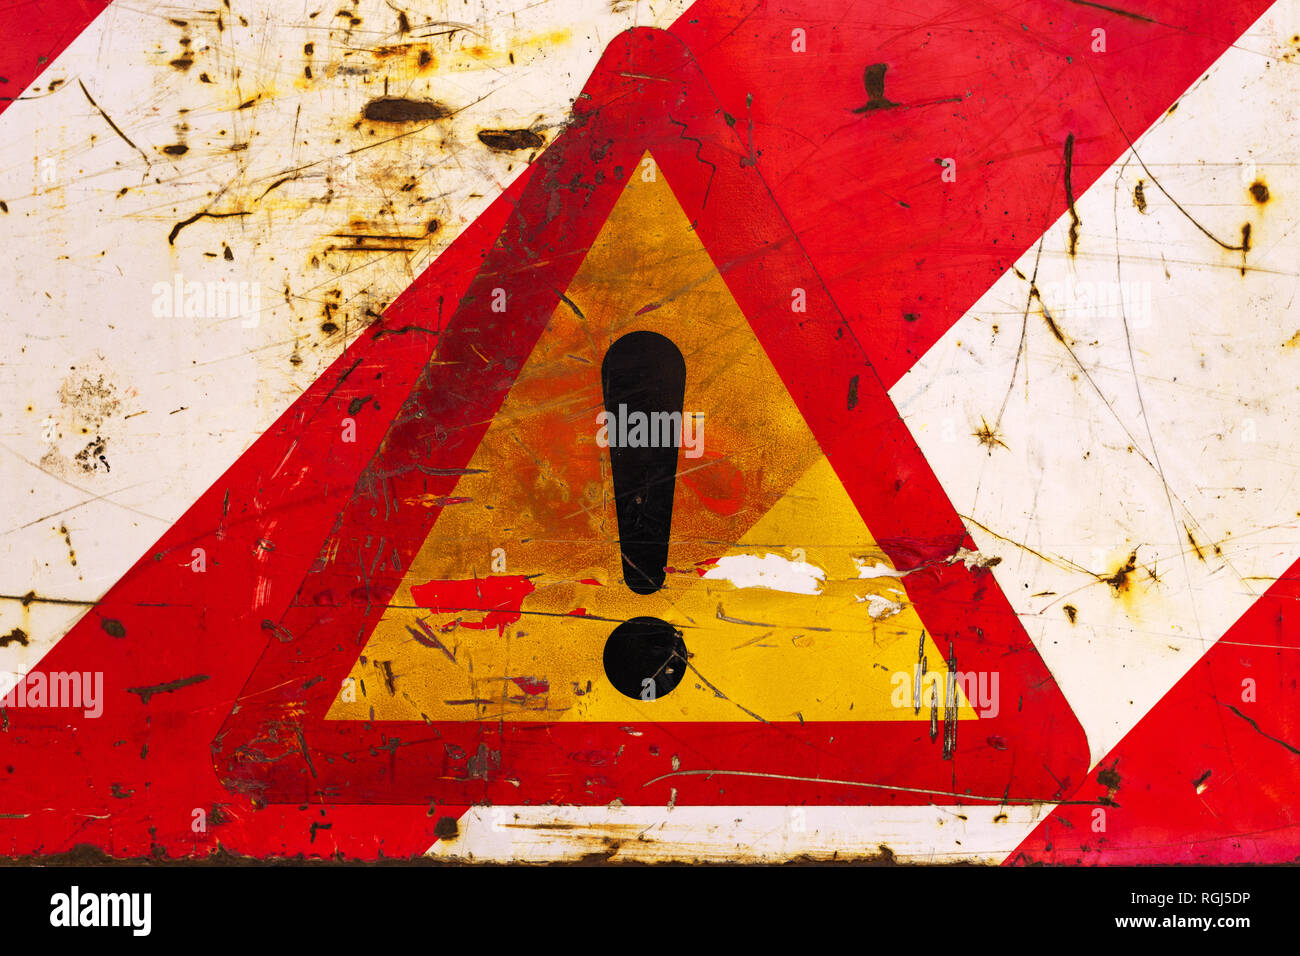 Exclamation triangular road sign for other danger, damaged and weathered surface - Stock Image